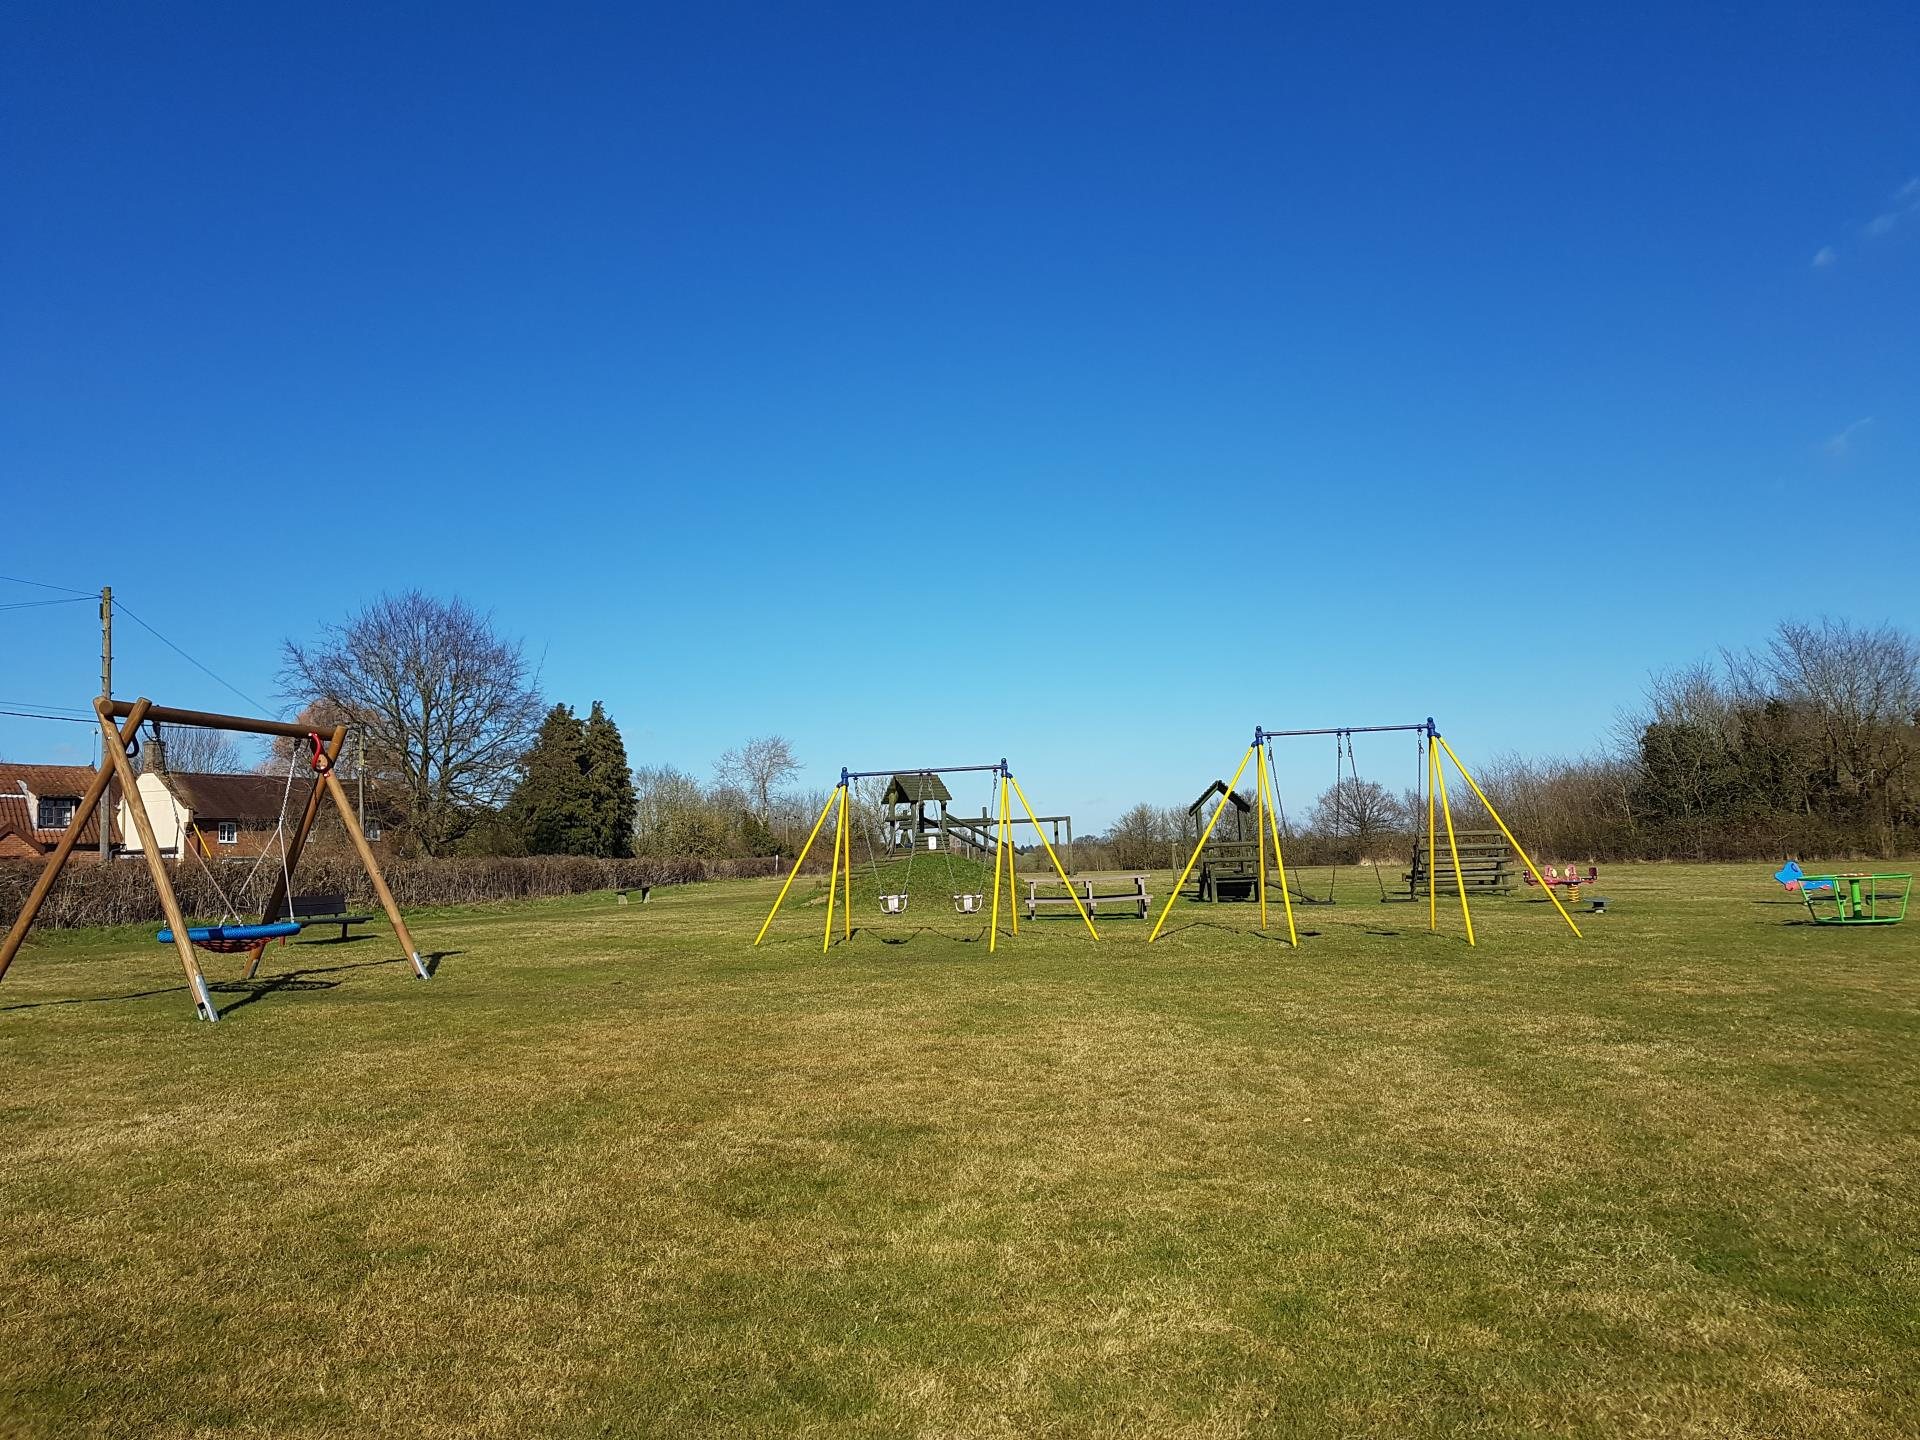 Gedding Park and Playground